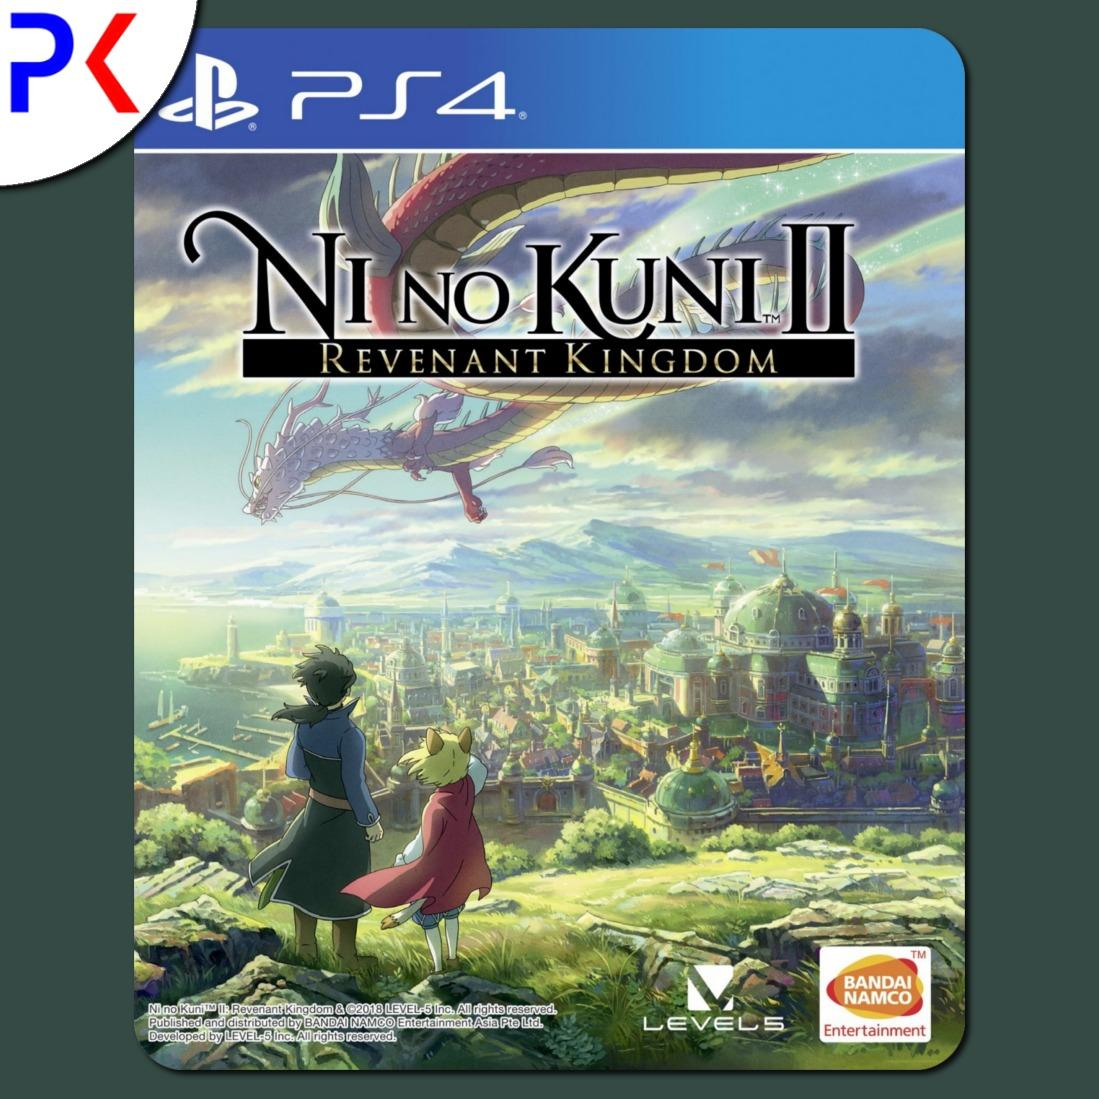 Best Offer Ps4 Ni No Kuni Ii Revenant Kingdom R3